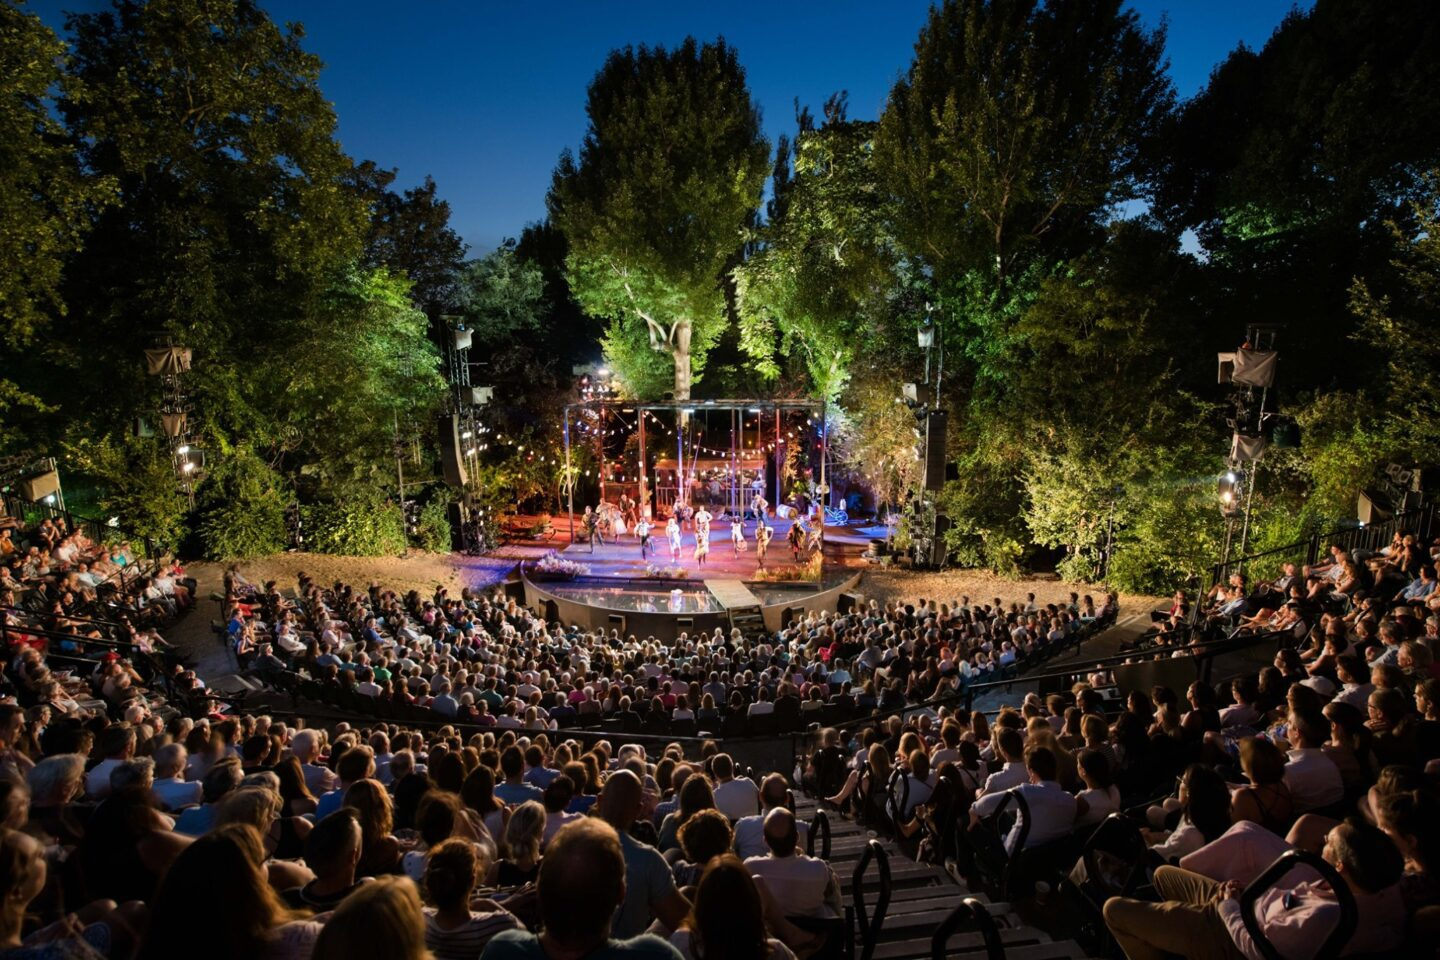 Regents Park: one of the most beautiful open air theatres in London.